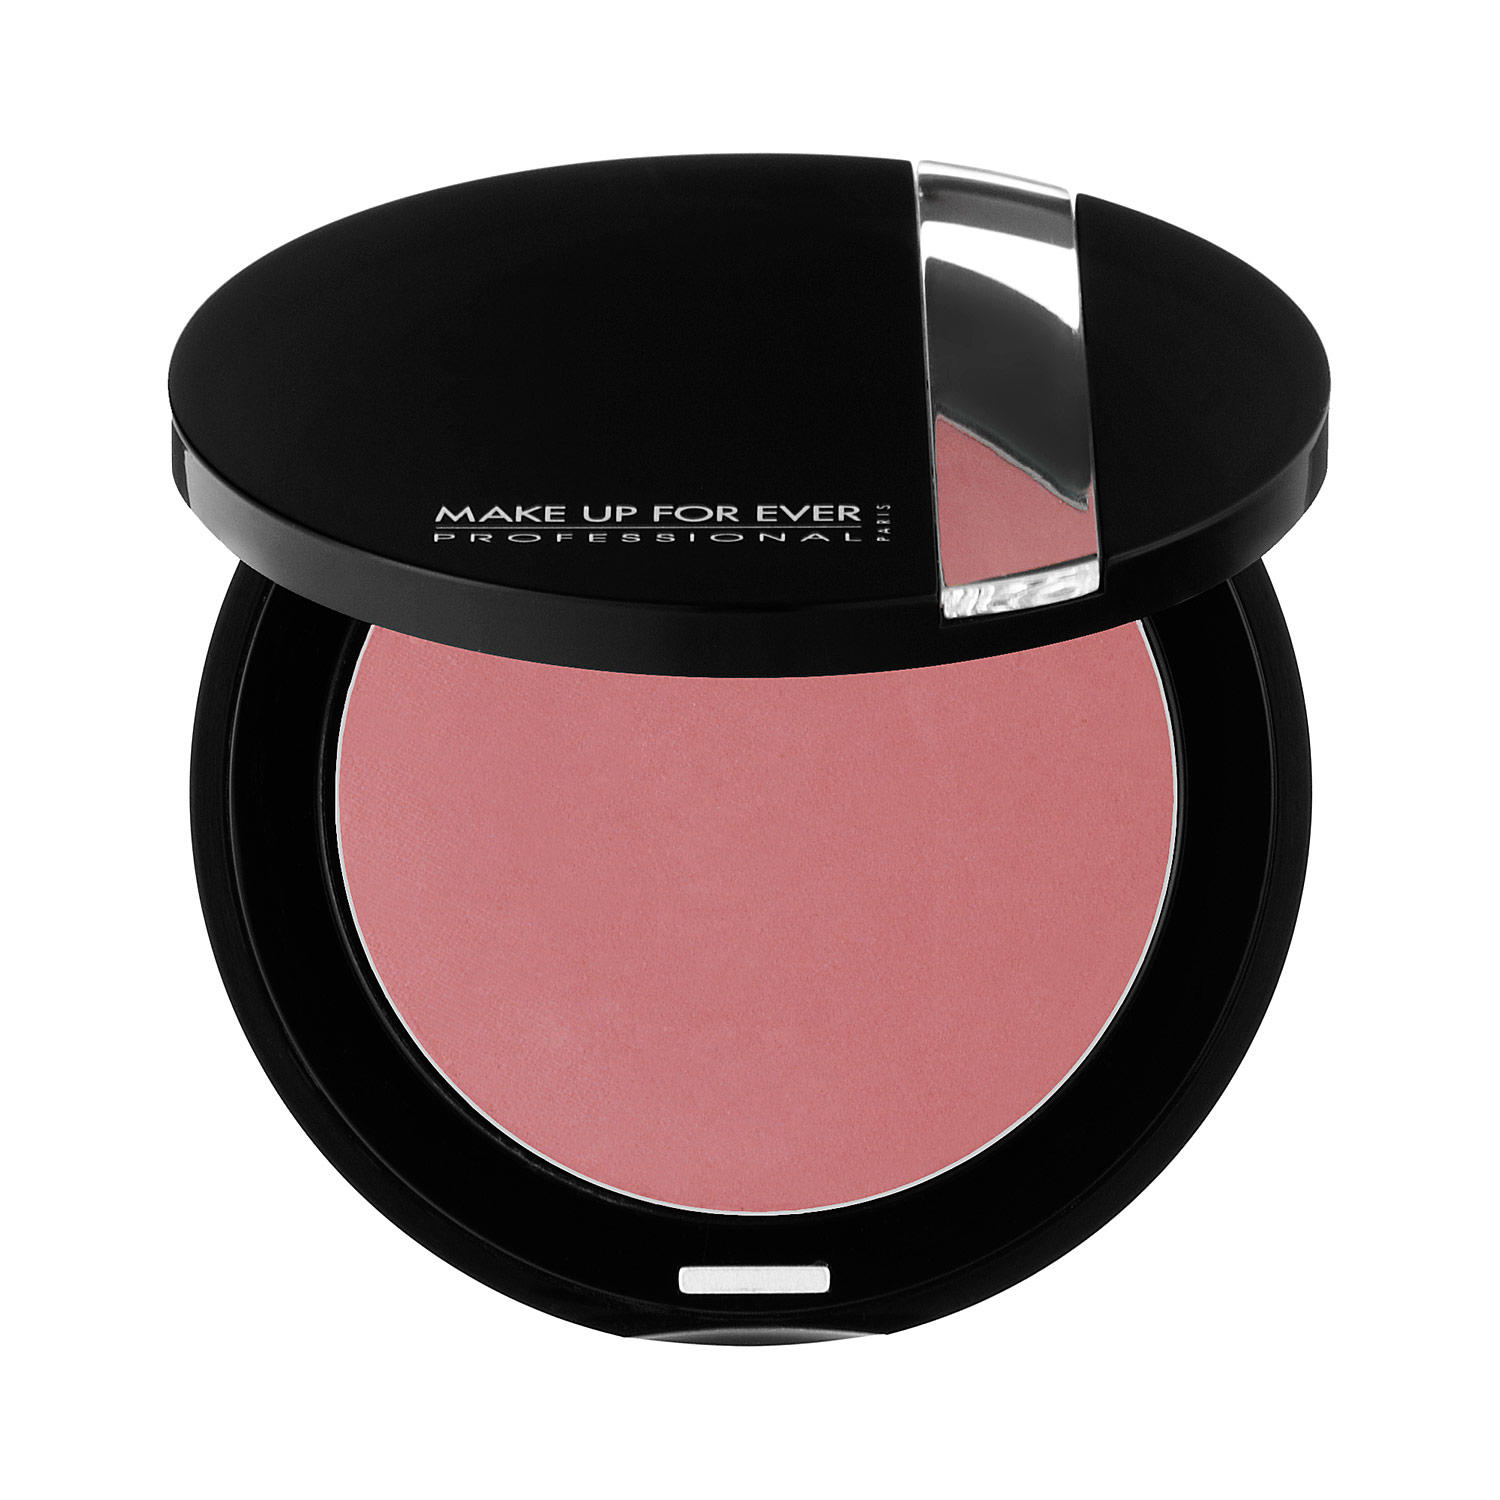 Makeup Forever Sculpting Blush 12 | Glambot.com - Best deals on ...